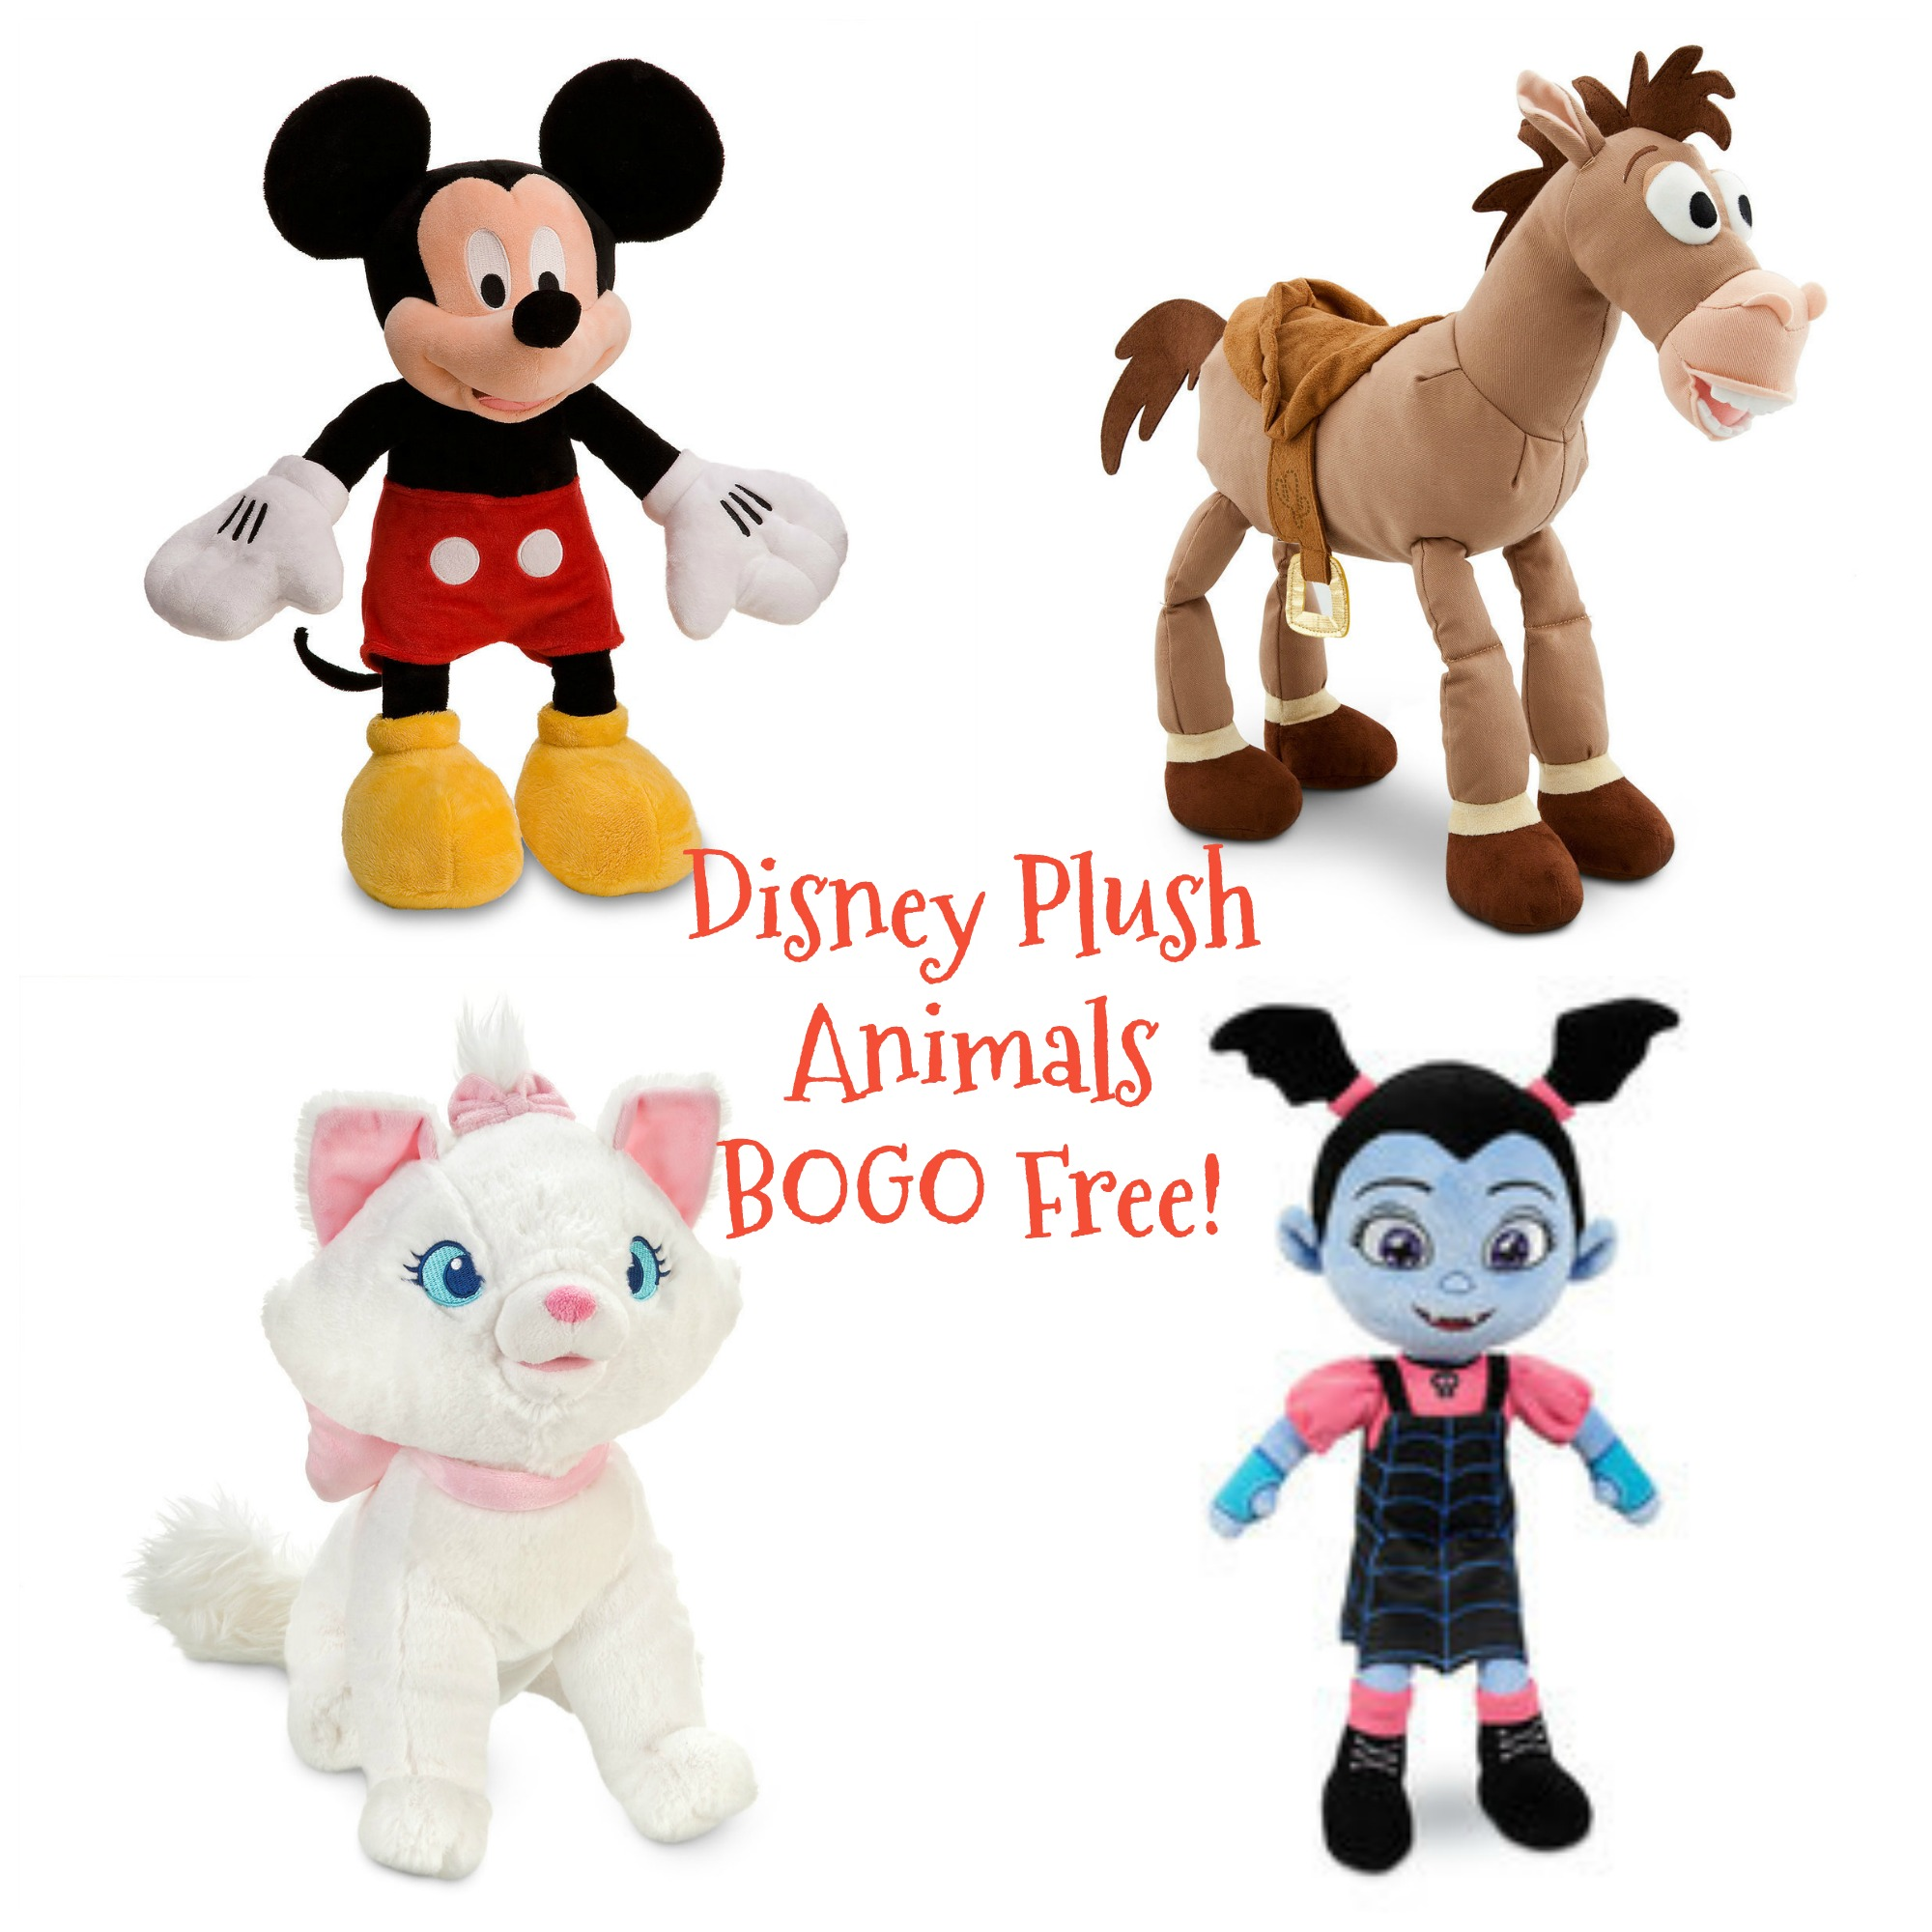 disney plush animals buy one get one free